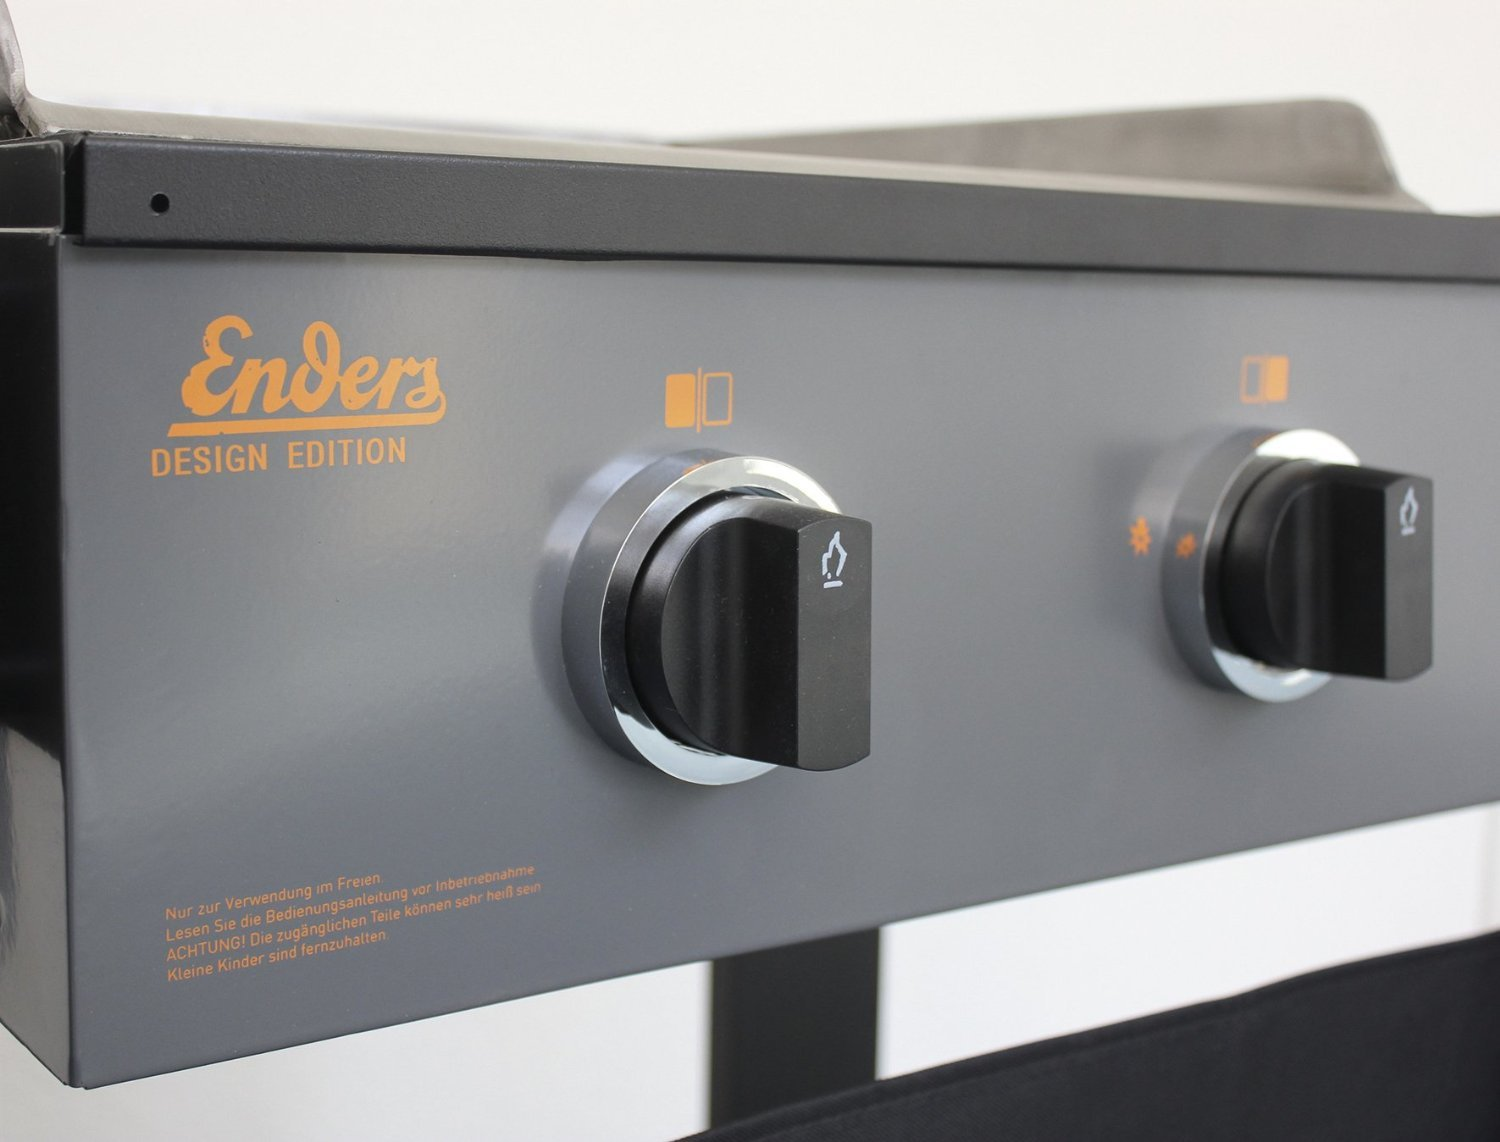 Enders Gasgrill Florida Plancha : Enders florida im vergleich enders florida design edition gasgrill